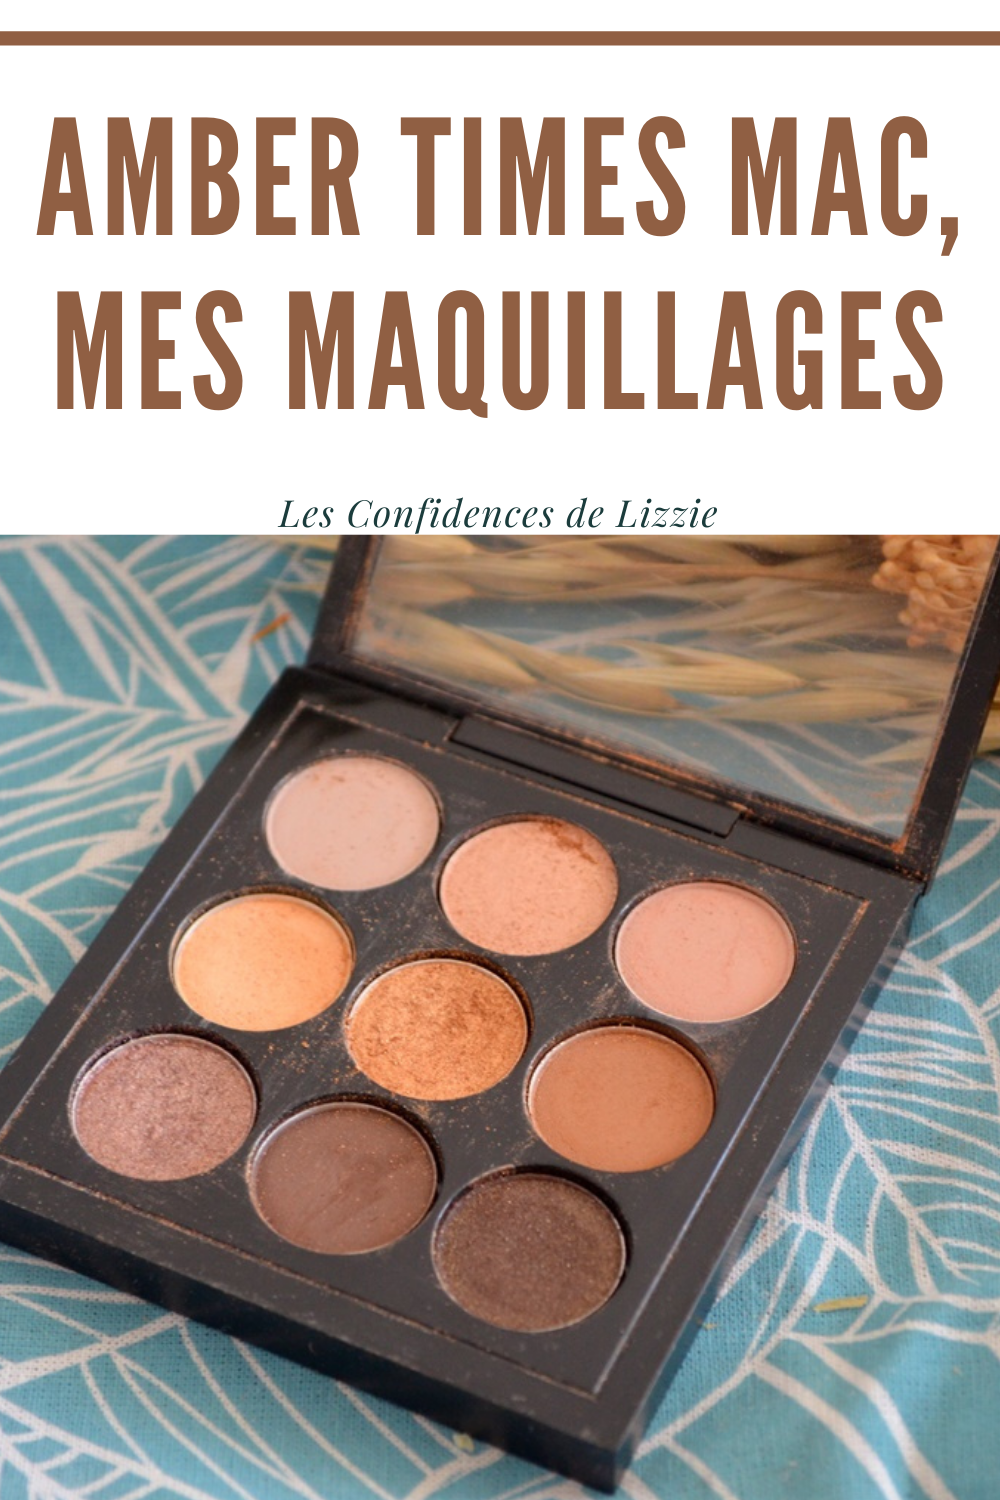 palette-amber-times-mac-cosmetics-mes-maquillages